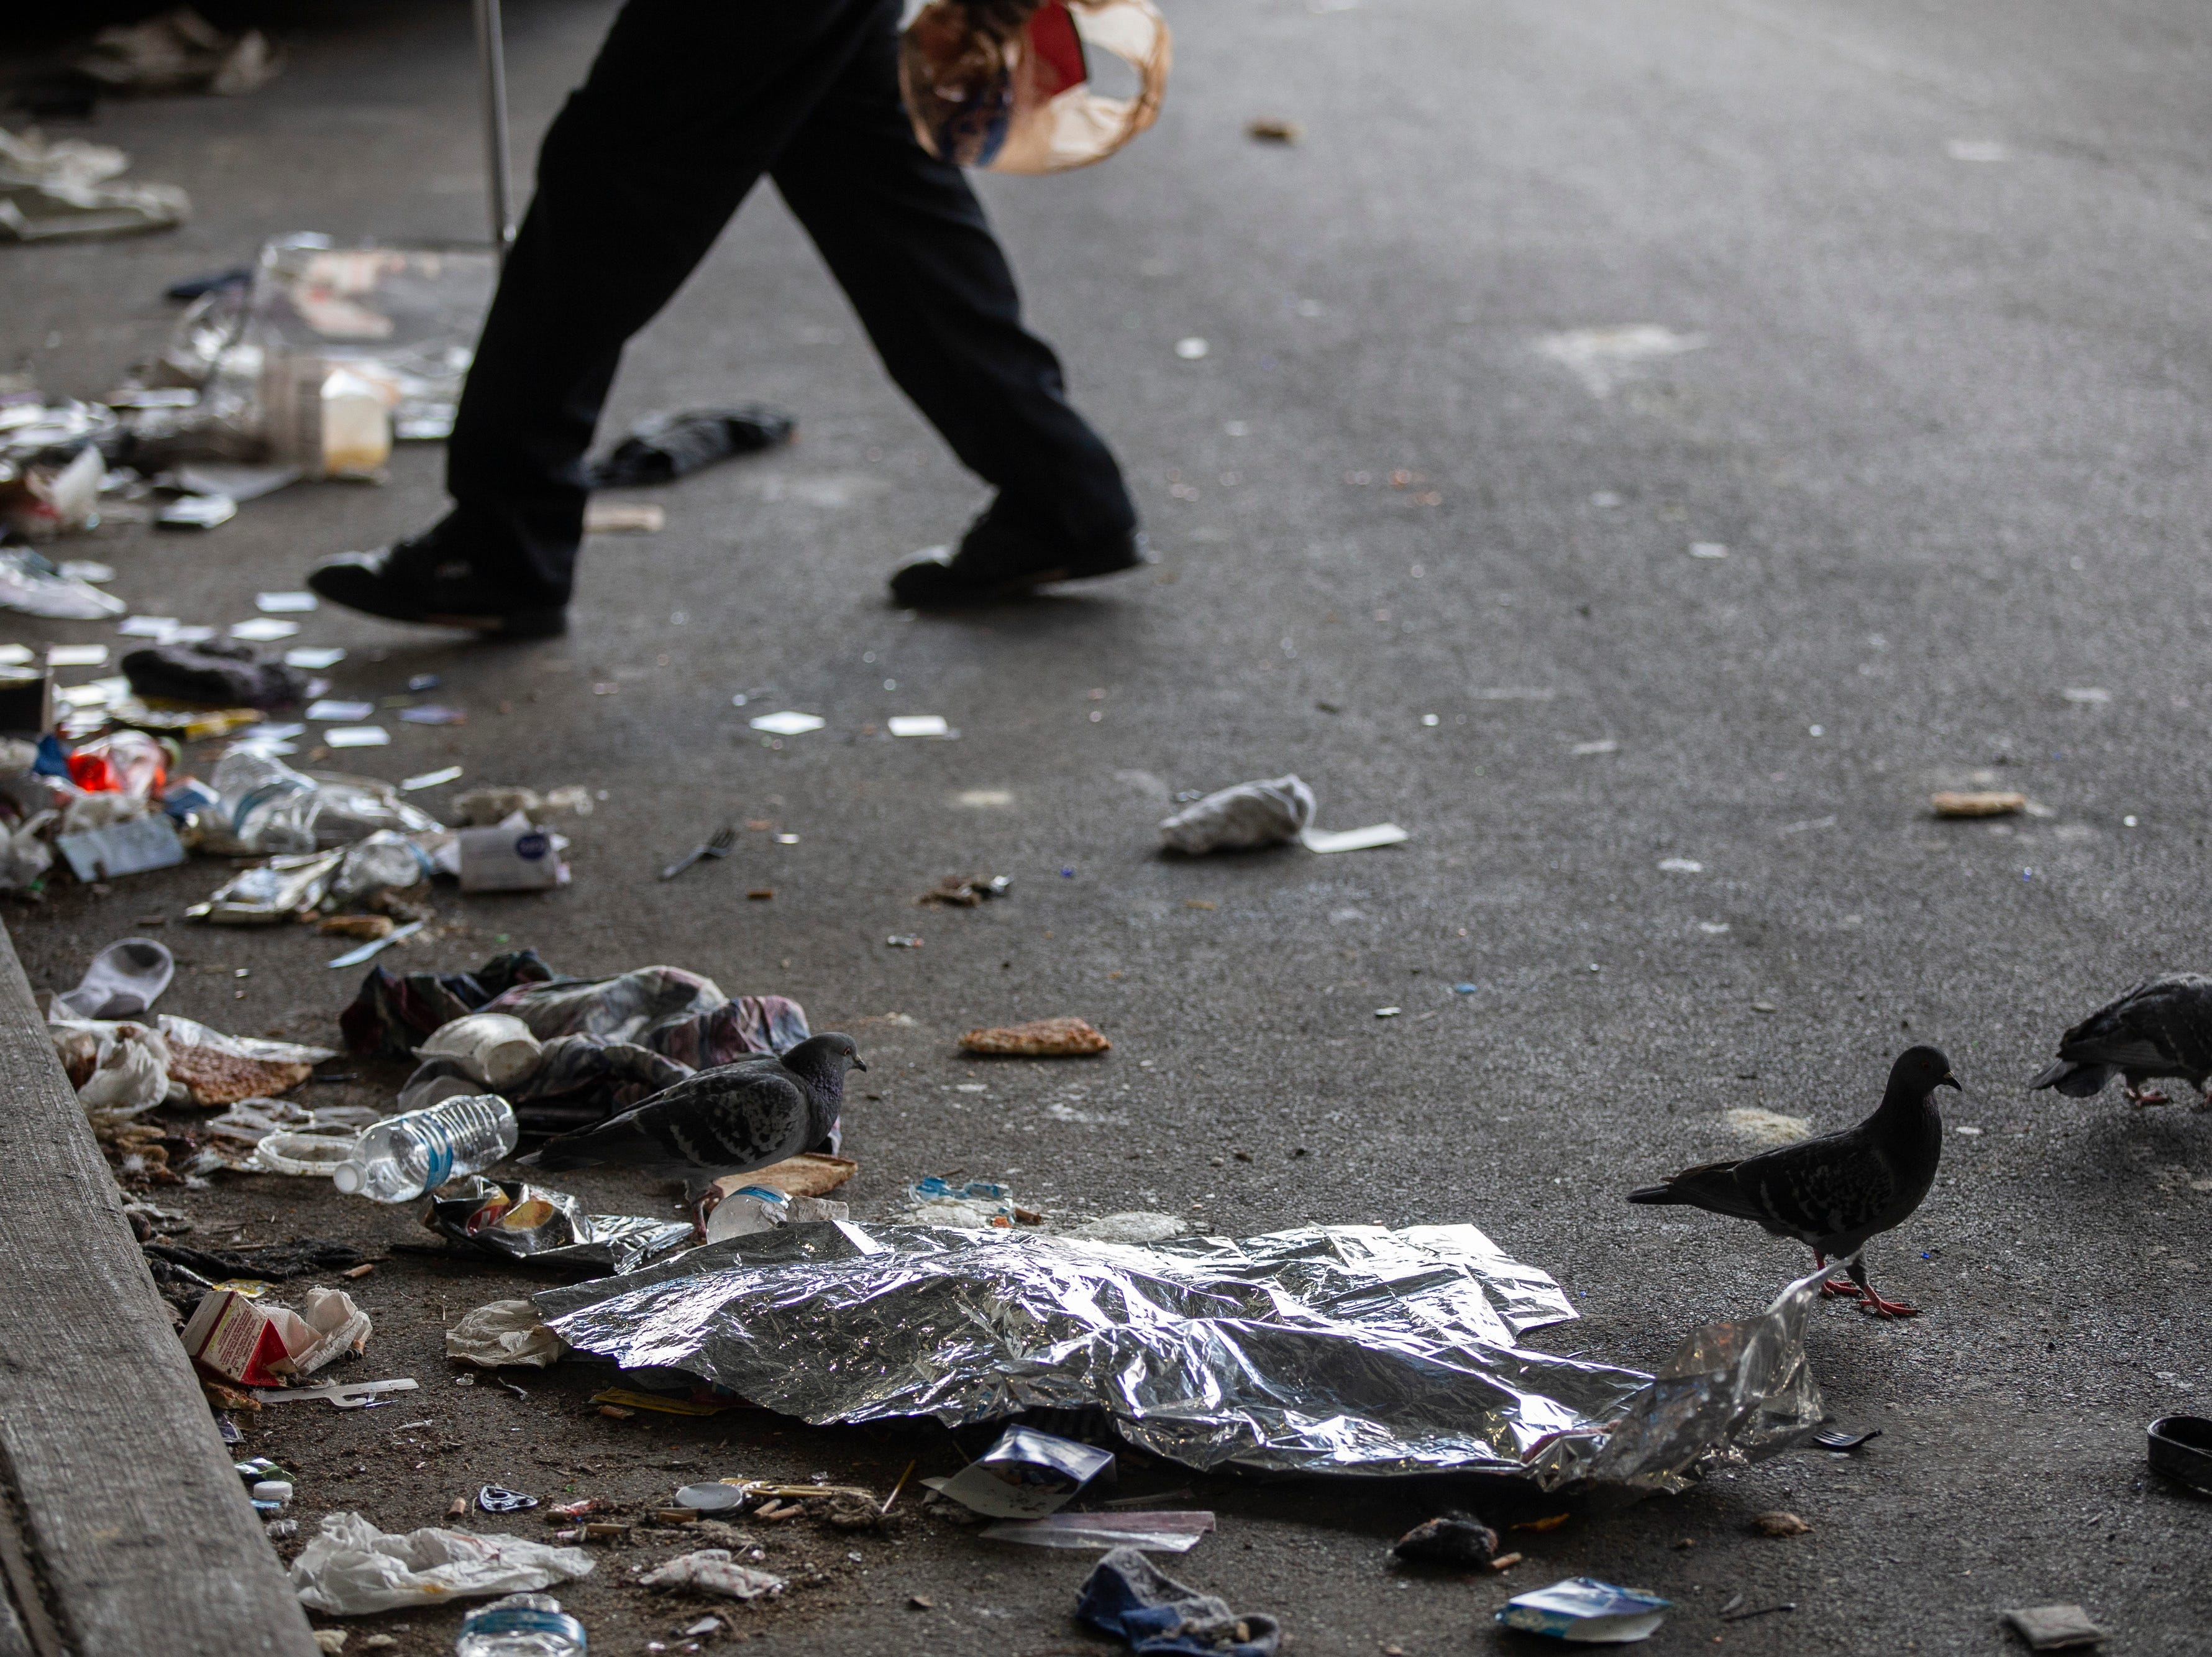 Residents move past pigeons and trash at the homeless camp area under the bypasses along East Jefferson Street and Jackson Street in downtown Louisville. March 18, 2019